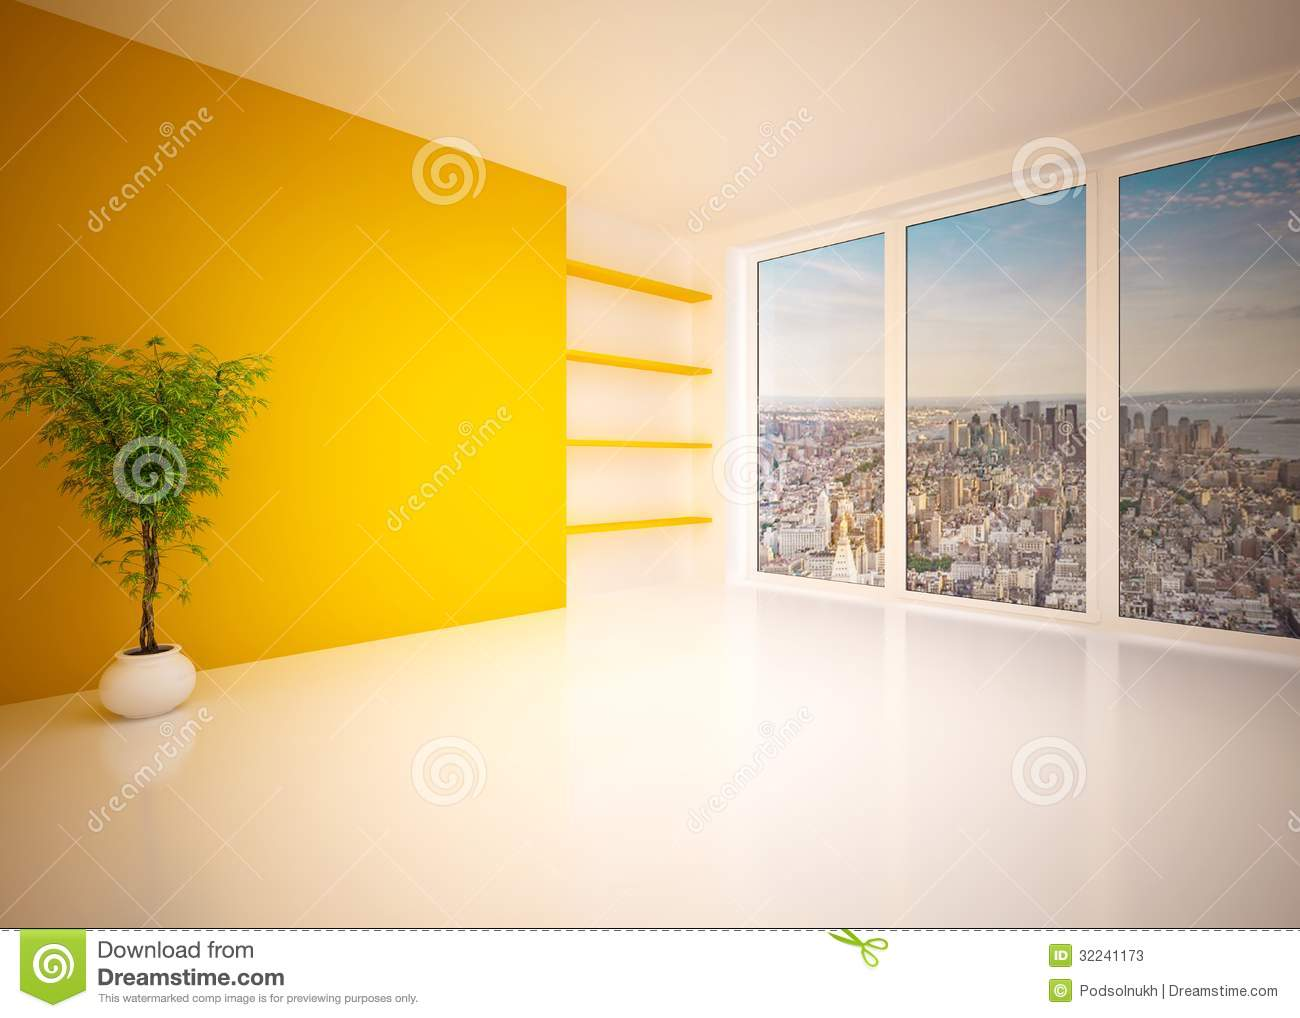 Salon int rieur moderne vide salon photos stock image for Le vide interieur